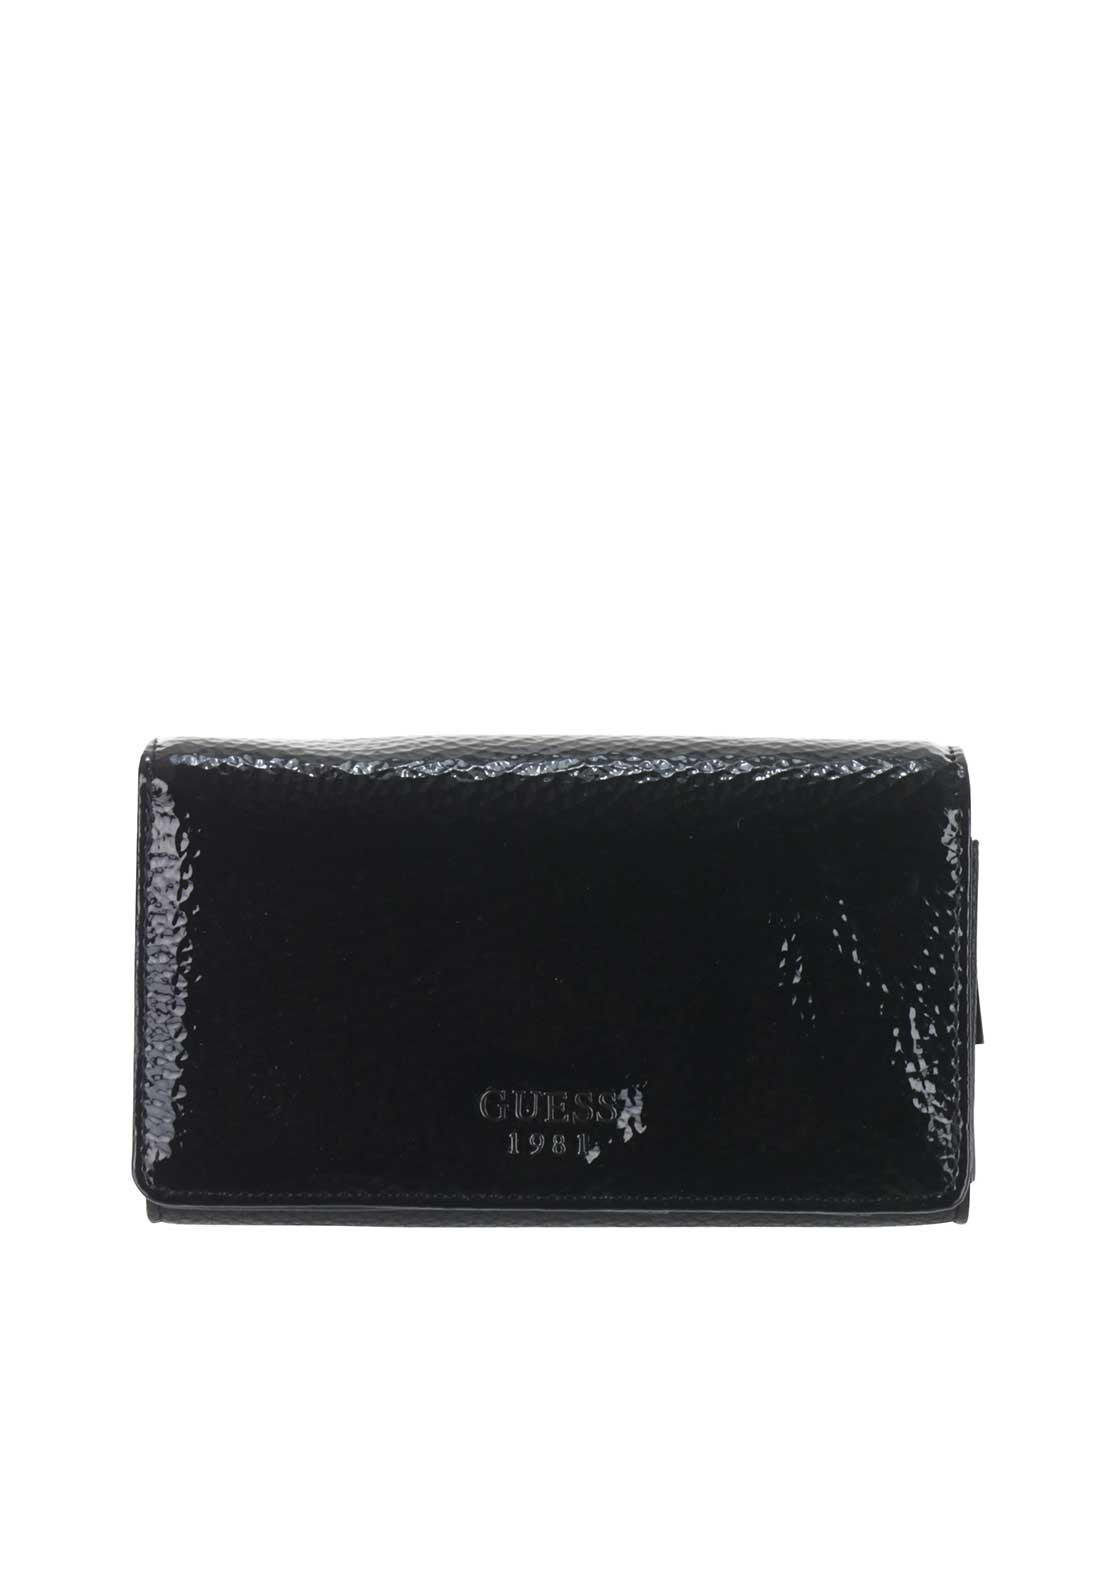 Guess Cate Patent-Look SLG Rollover Case Purse, Black